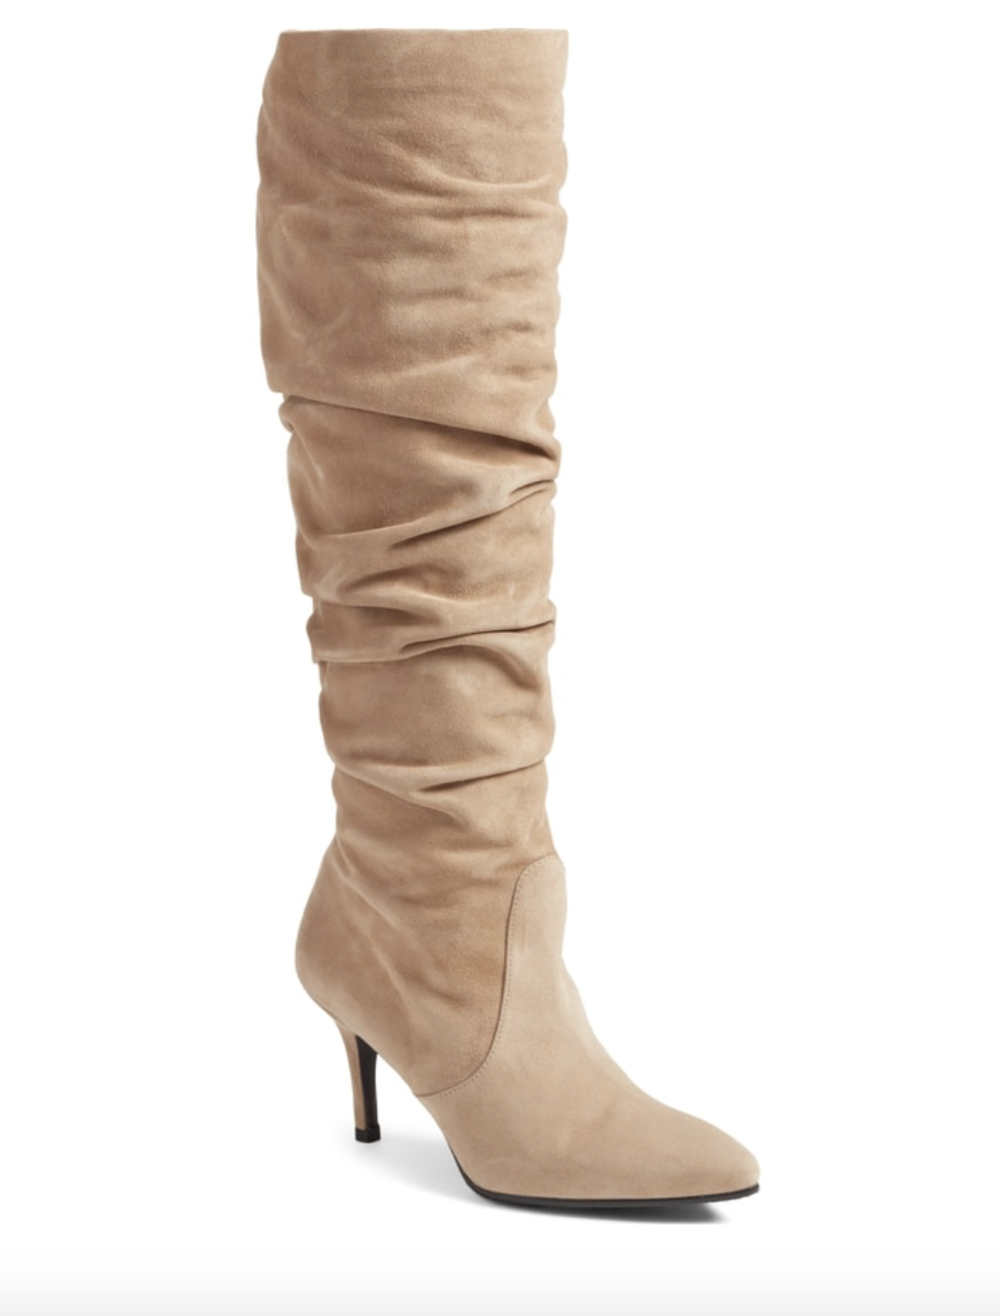 momlikethat nordstrom anniversary sale stuart Weitzman sluch boots.png